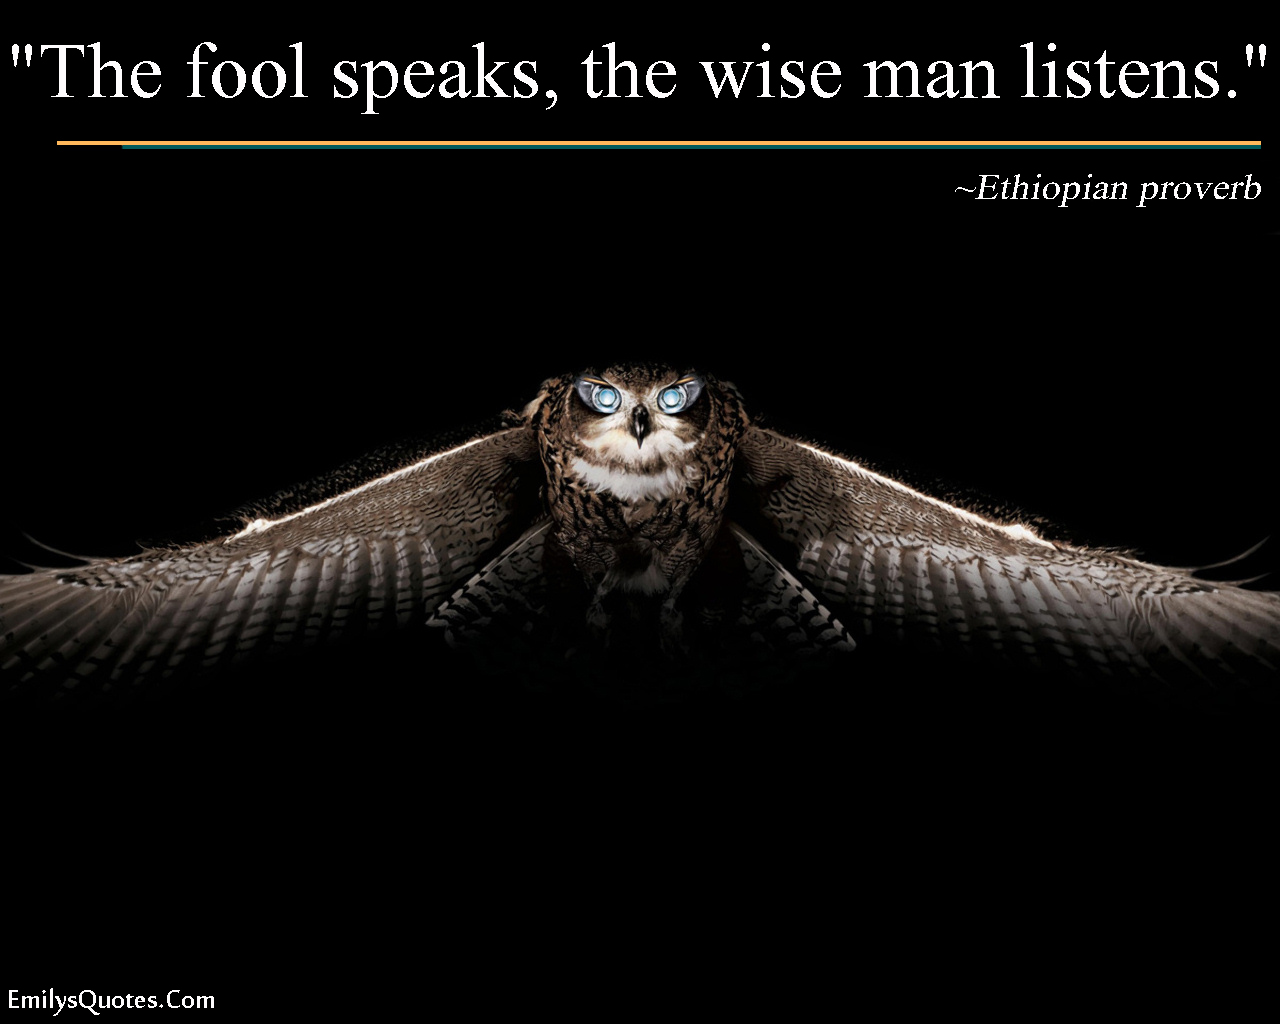 EmilysQuotes.Com - fool, speaking, wise, listening, Ethiopian proverb, intelligence, people